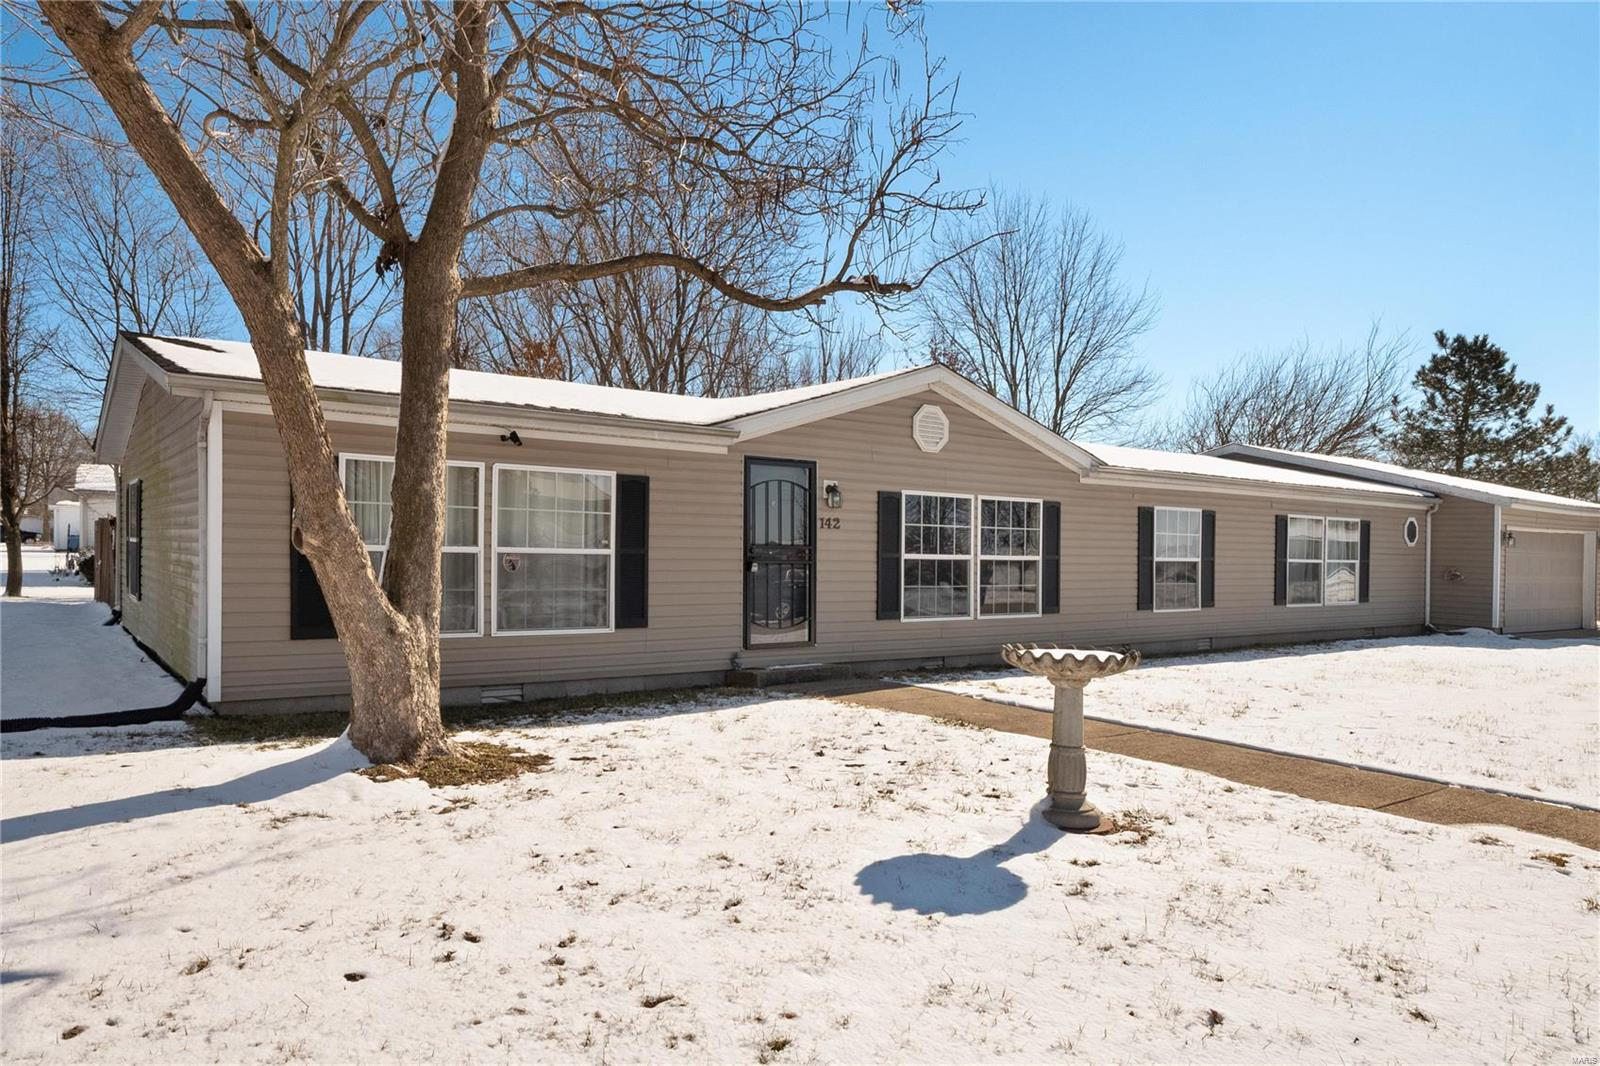 142 Weatherholt Drive Property Photo - New Baden, IL real estate listing